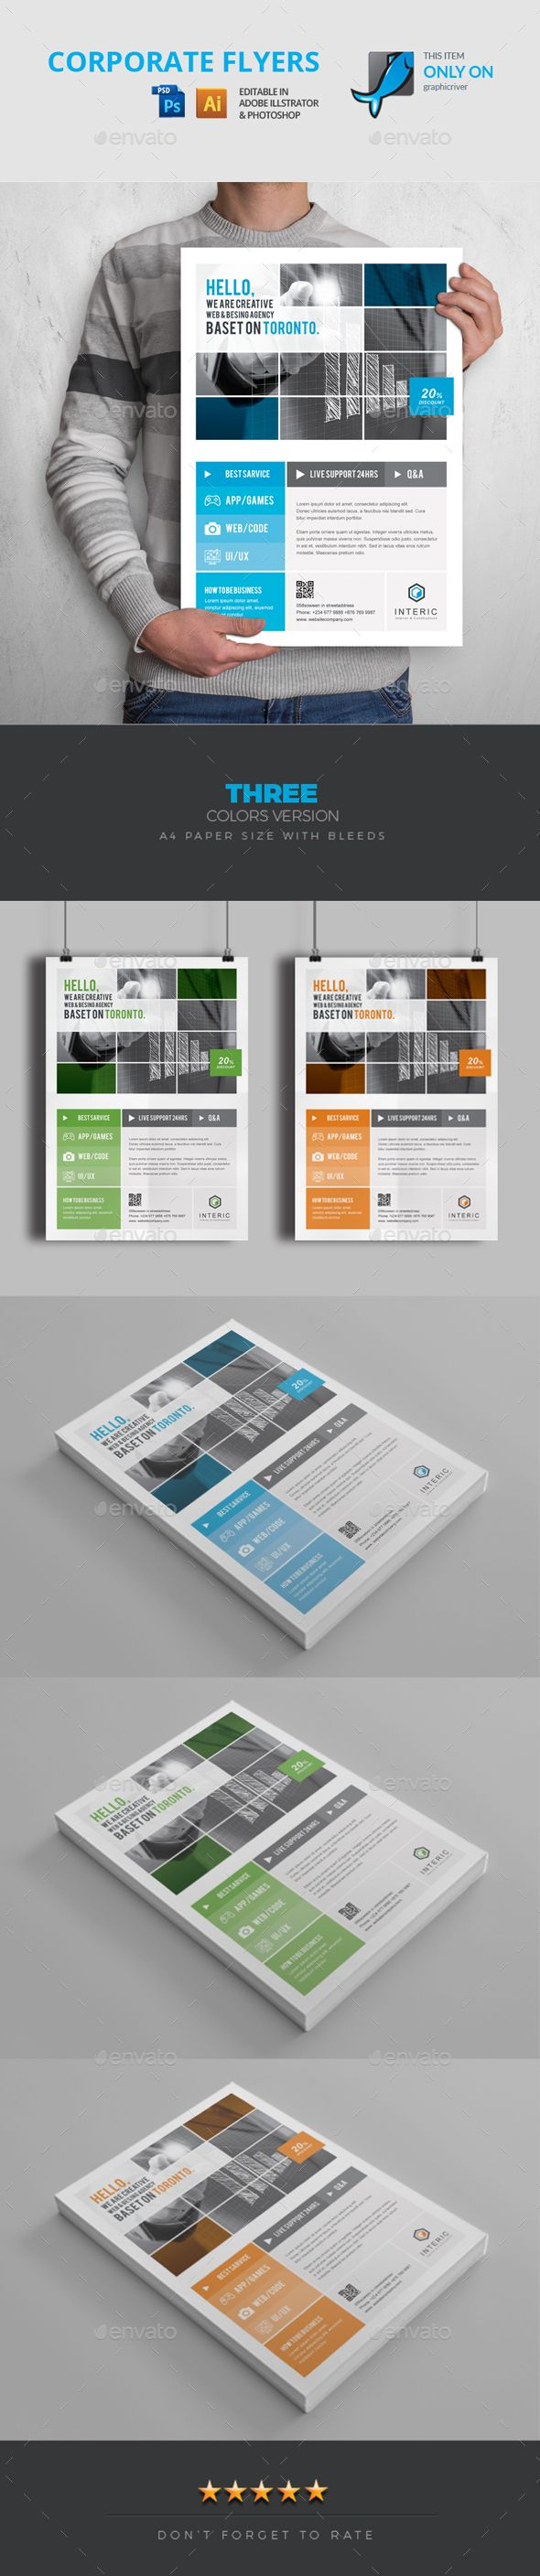 Flyer lyer Well Layered Organised (EPS & PSD), 210×297, CMYK , Print ready,Text/fonts/colors editable. Whats you get in the main files AI/Vector EPS, PSD, CMYK , Text/Font and Color editable, With 3 Colors- Hicolor, Reverse, Grayscale and B/W Logo. Used font included in help file (100% Free). If you like, please rate this…